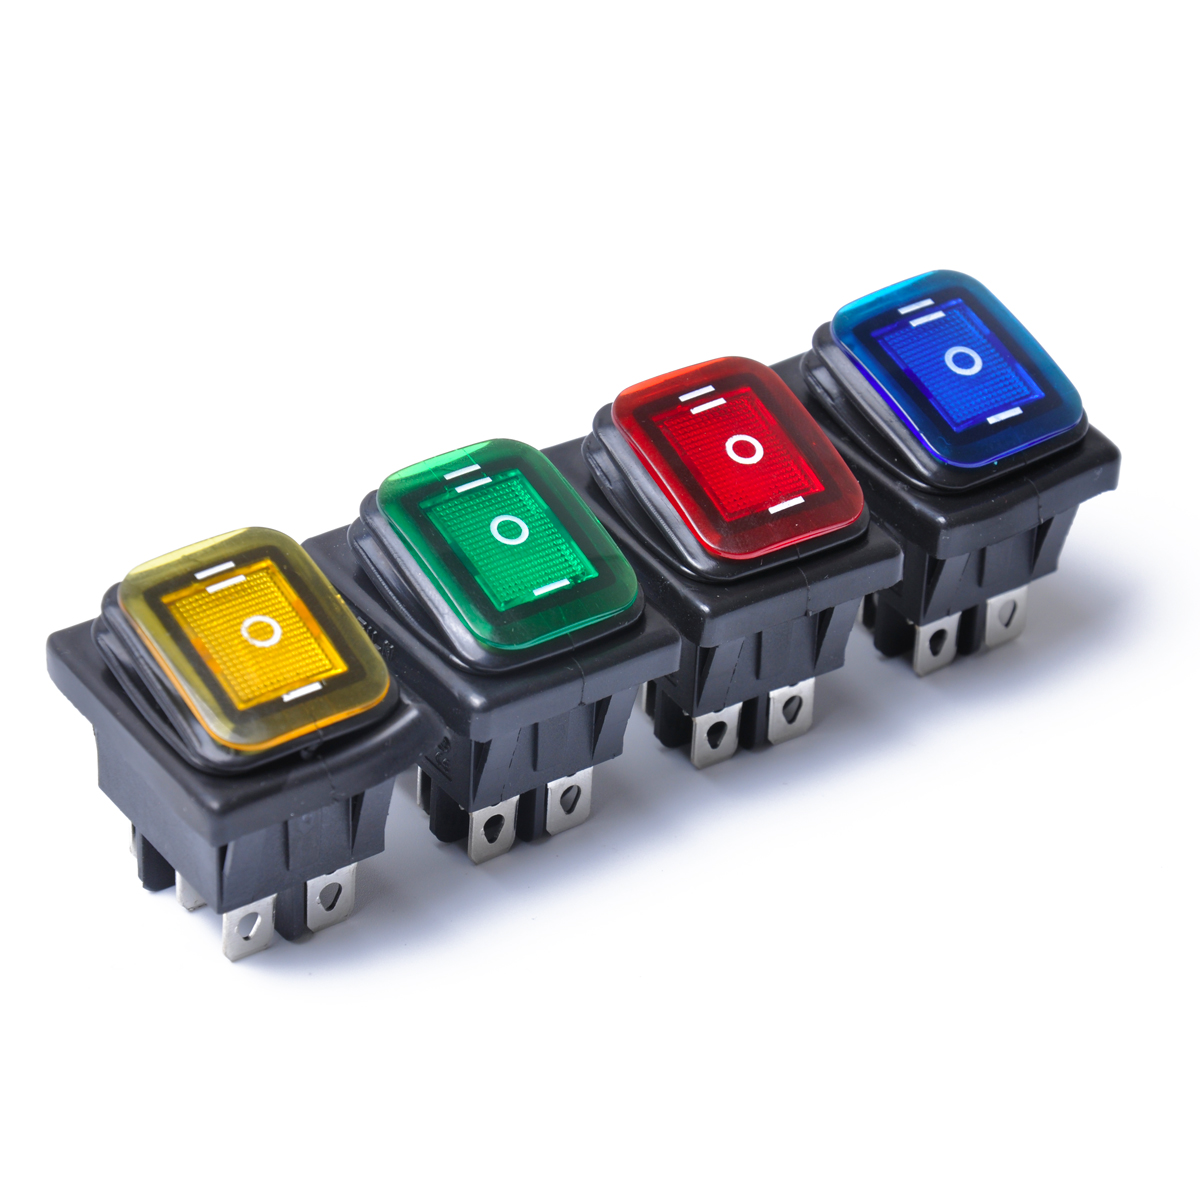 Rocker Toggle Switch On-off-on 4 Pins 12v Dc Car Boat Automobiles Waterproof Led Latching Switches Marine Hardware